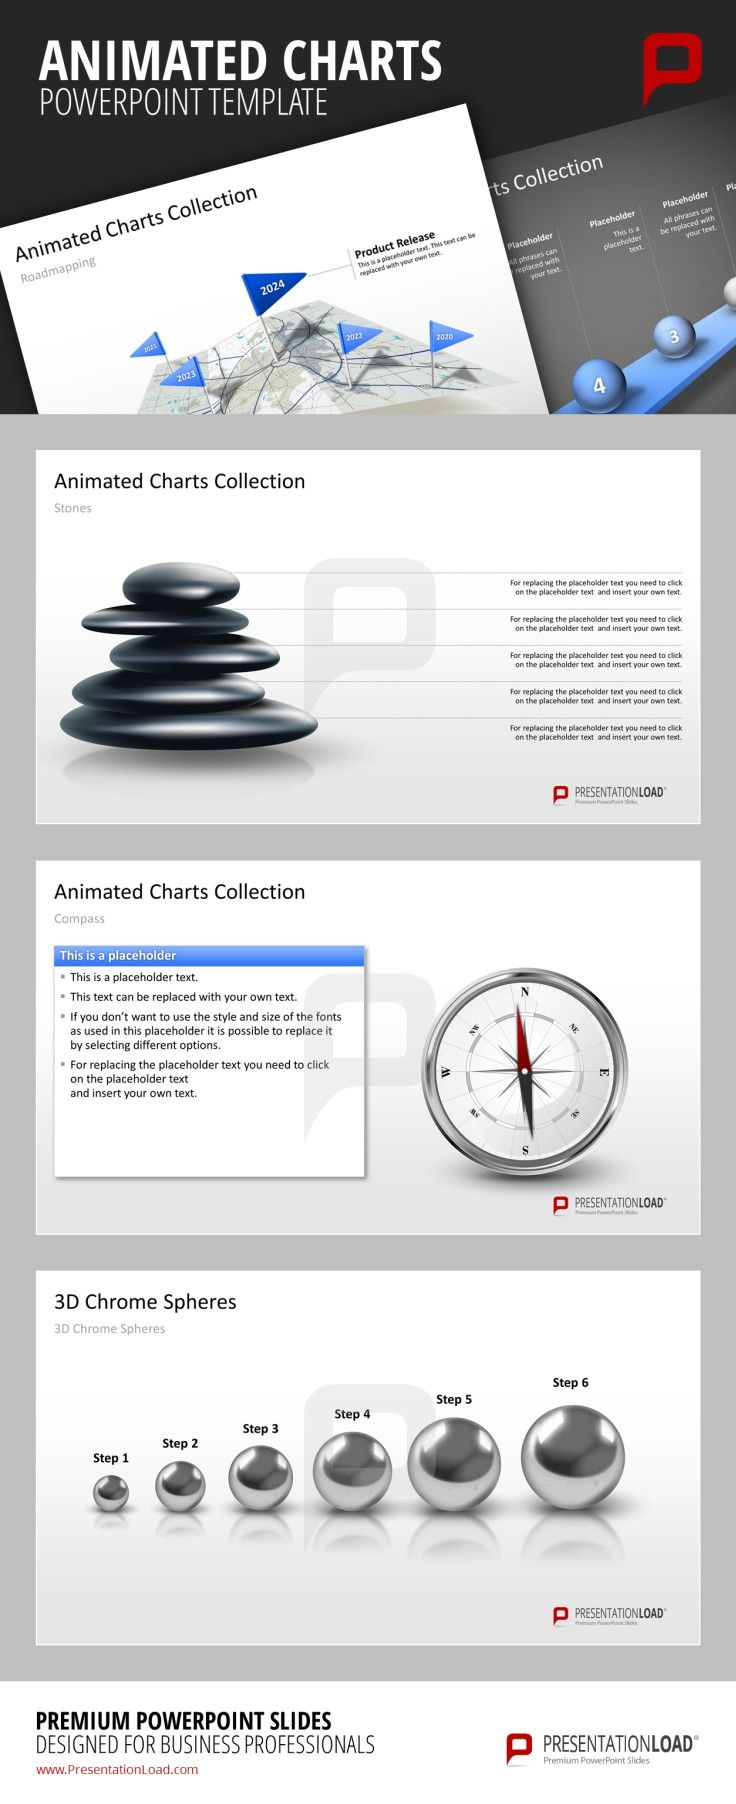 15 best animation powerpoint templates images on pinterest animated powerpoint templates the animated charts collection for powerpoint contains a broad variety of animated charts toneelgroepblik Images